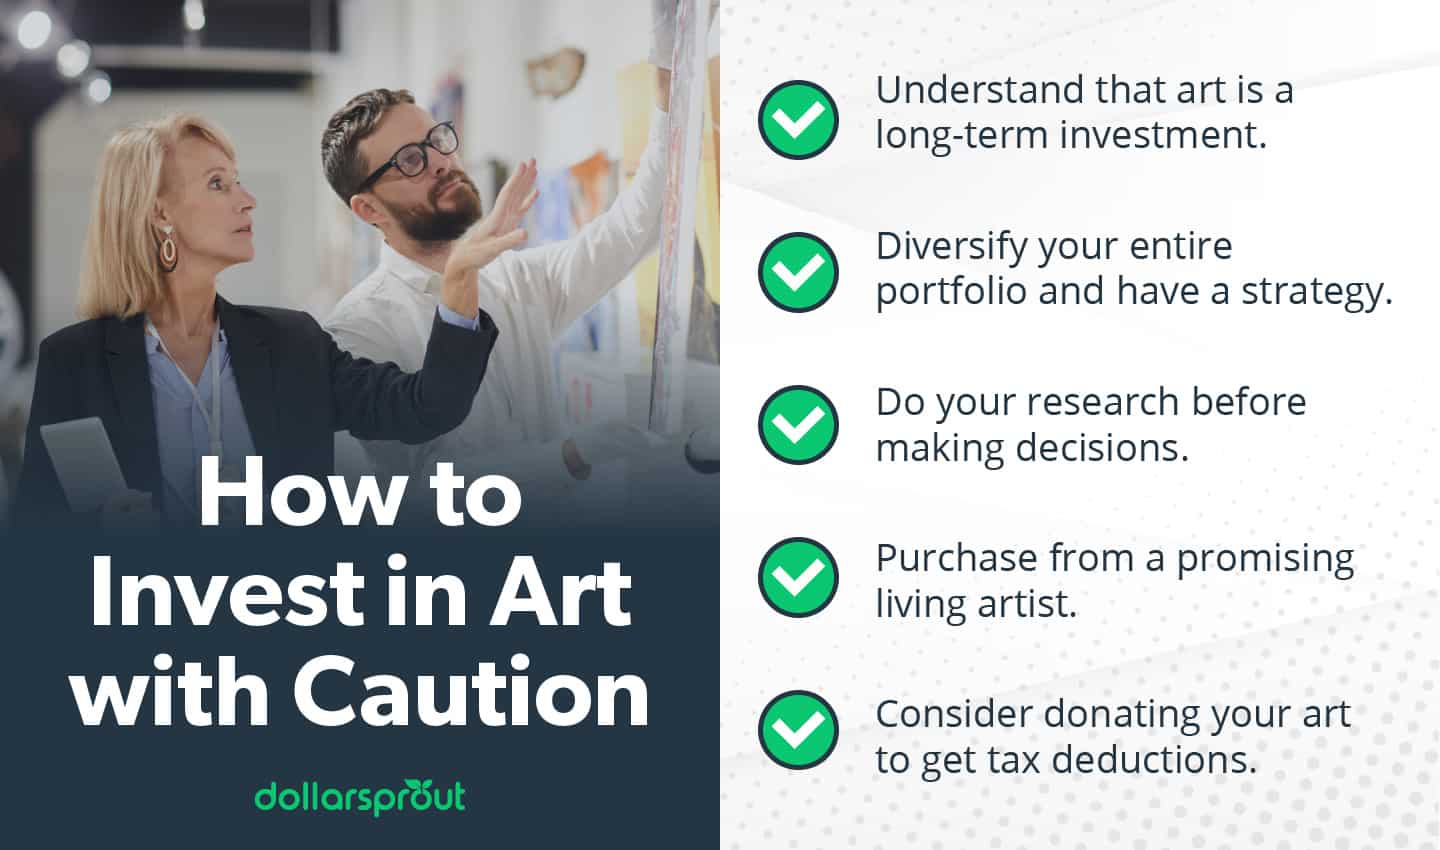 How to Invest in Art With Caution